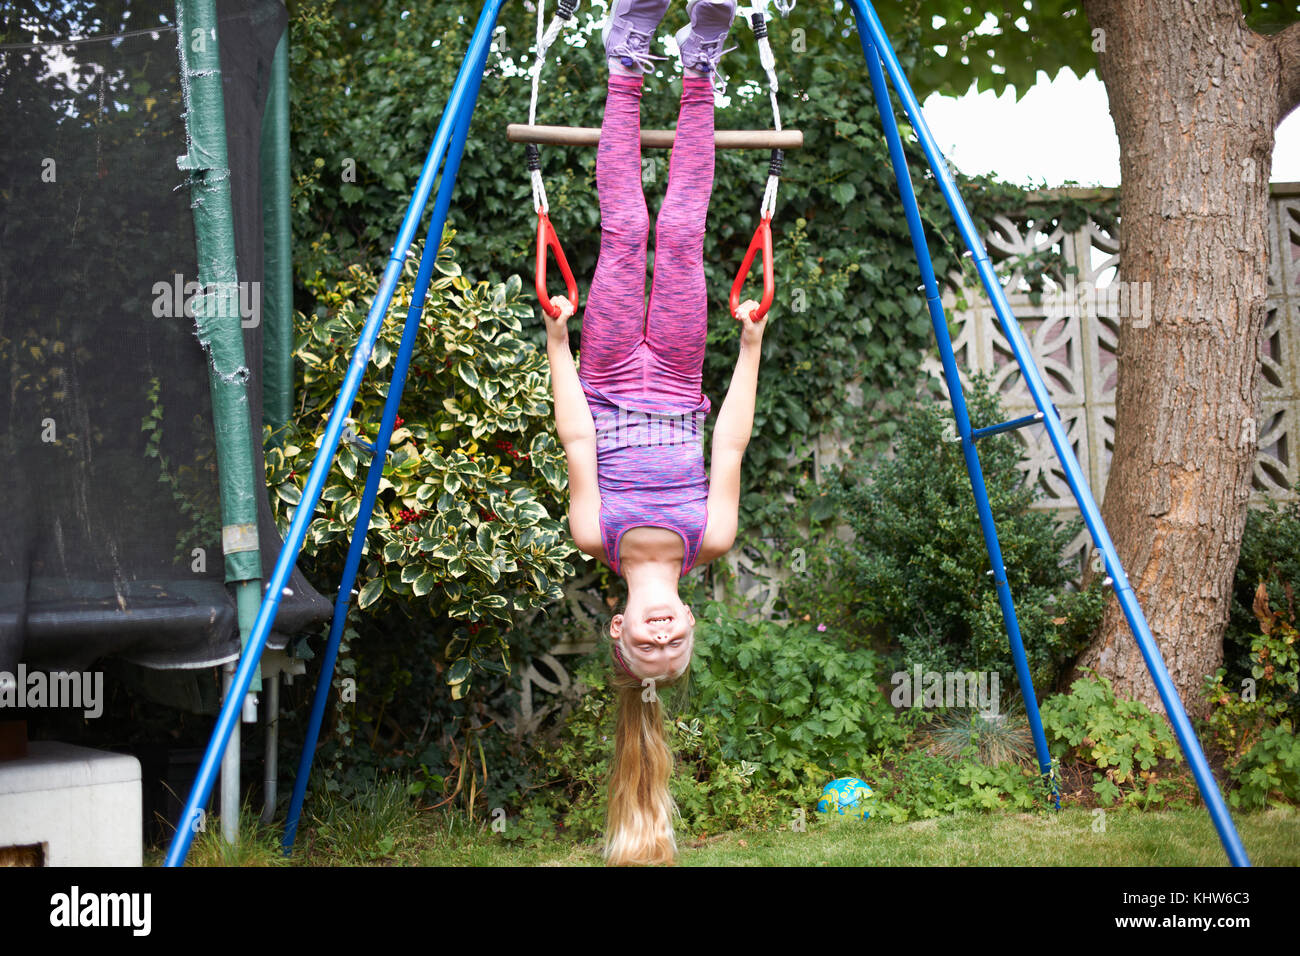 Young girl in garden, hanging upside-down from play frame - Stock Image